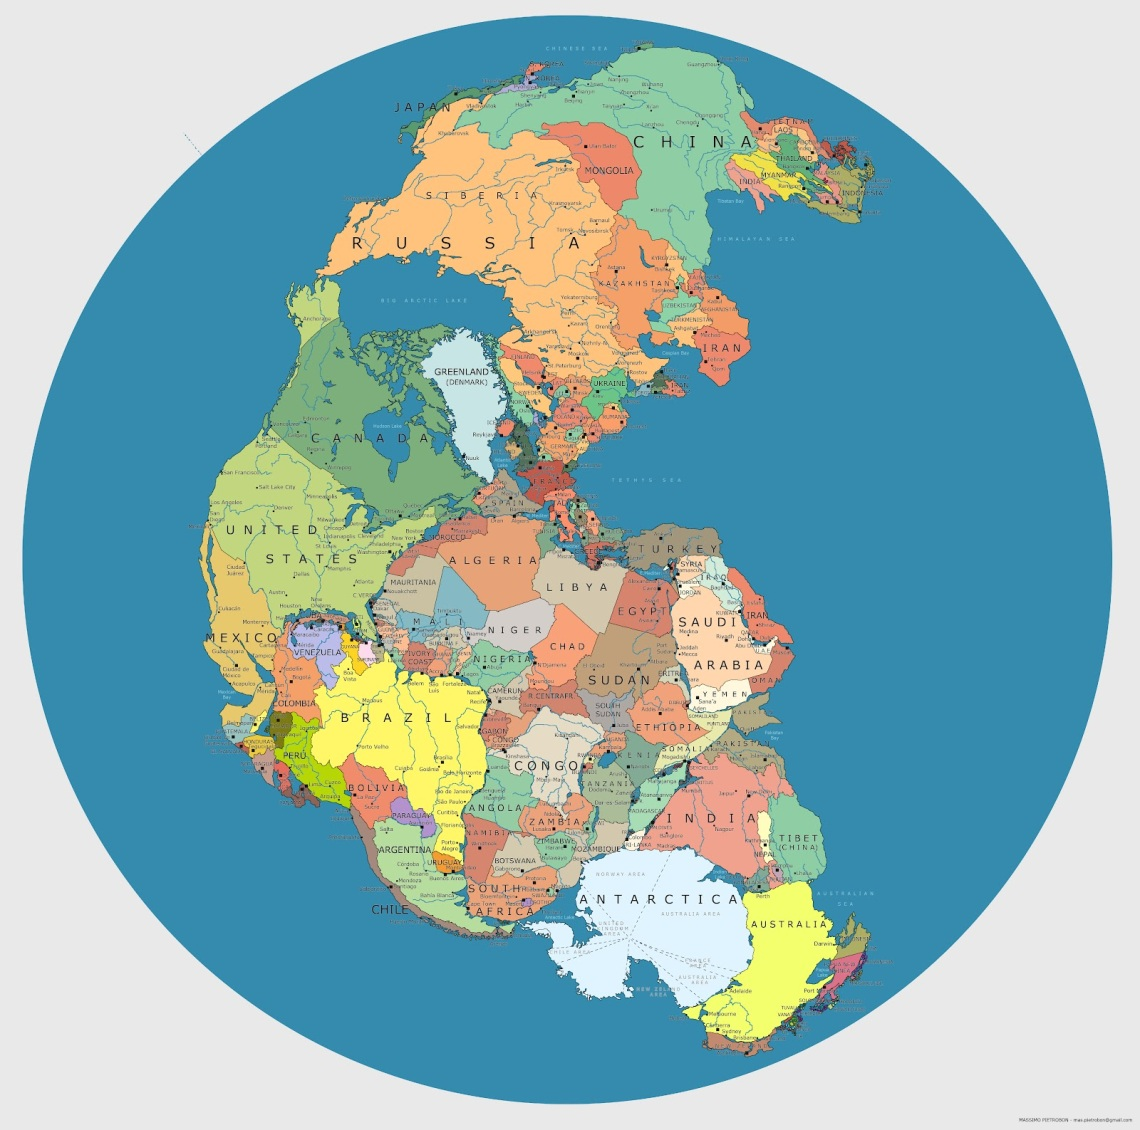 The Jigsaw Puzzle of Pangea: What It Tells Us About Our Fragile Human Lives